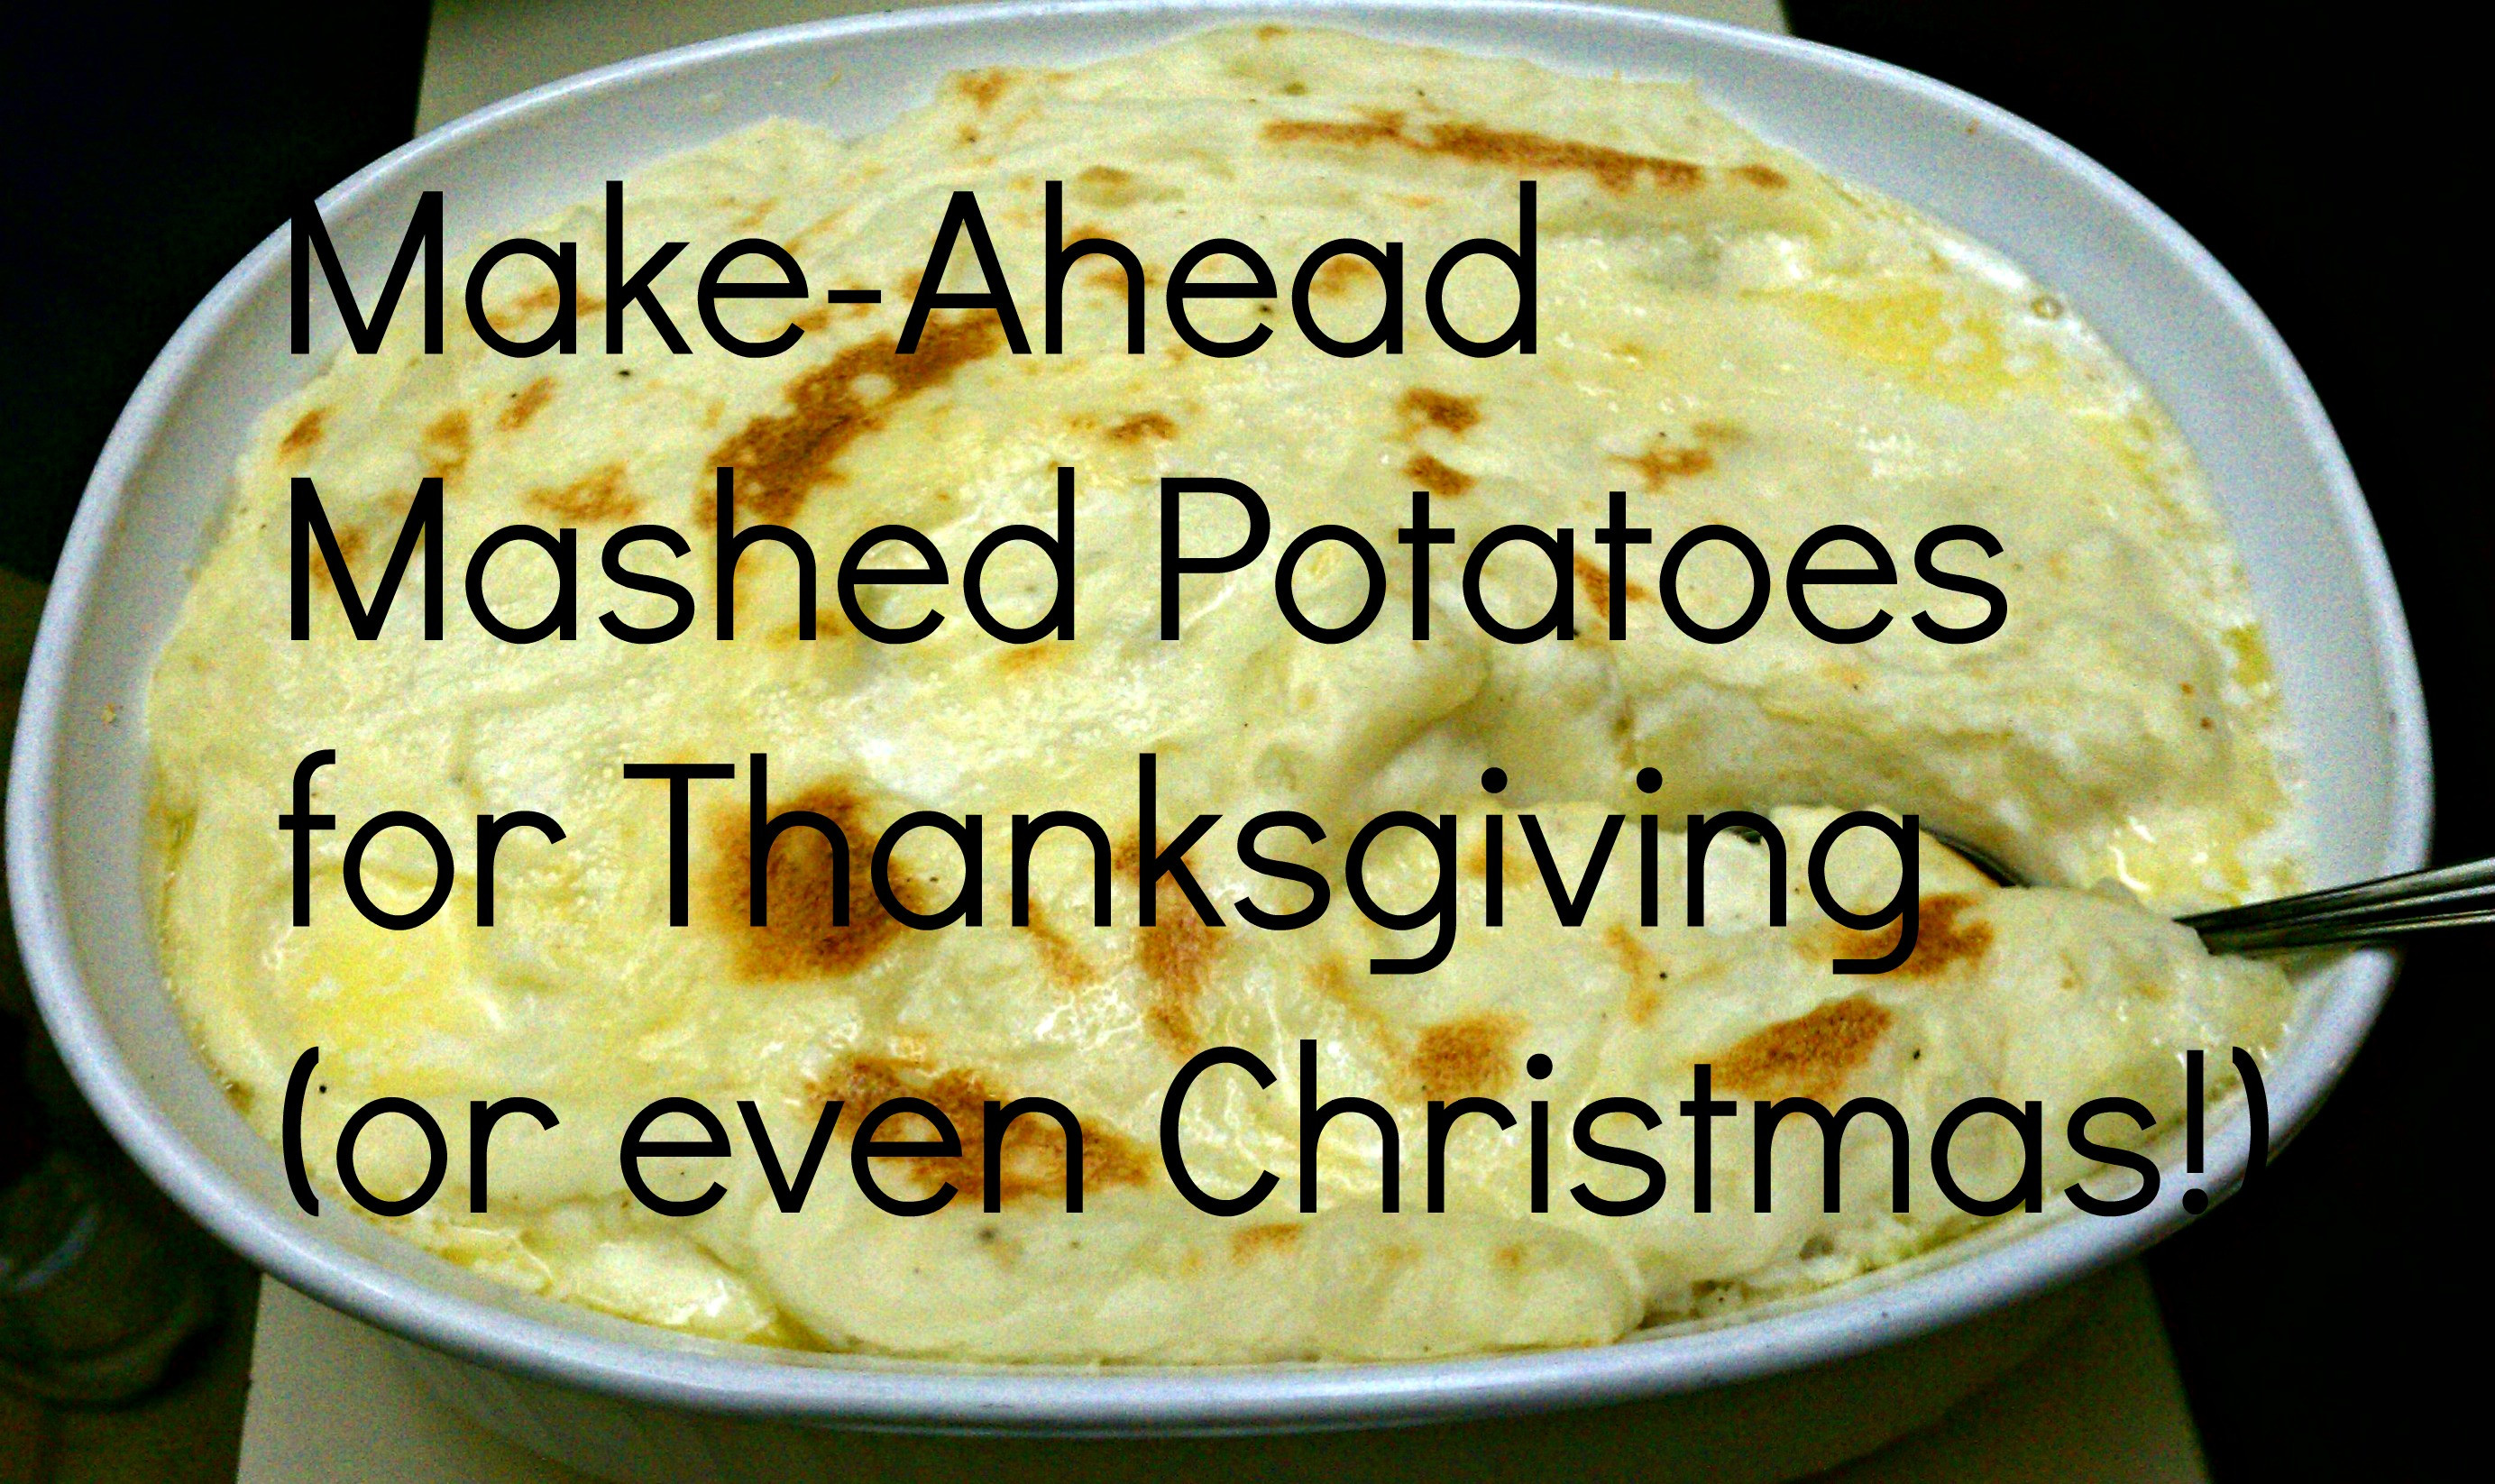 Make Ahead Mashed Potatoes For Thanksgiving  How To Freeze Mashed Potatoes Now For Thanksgiving